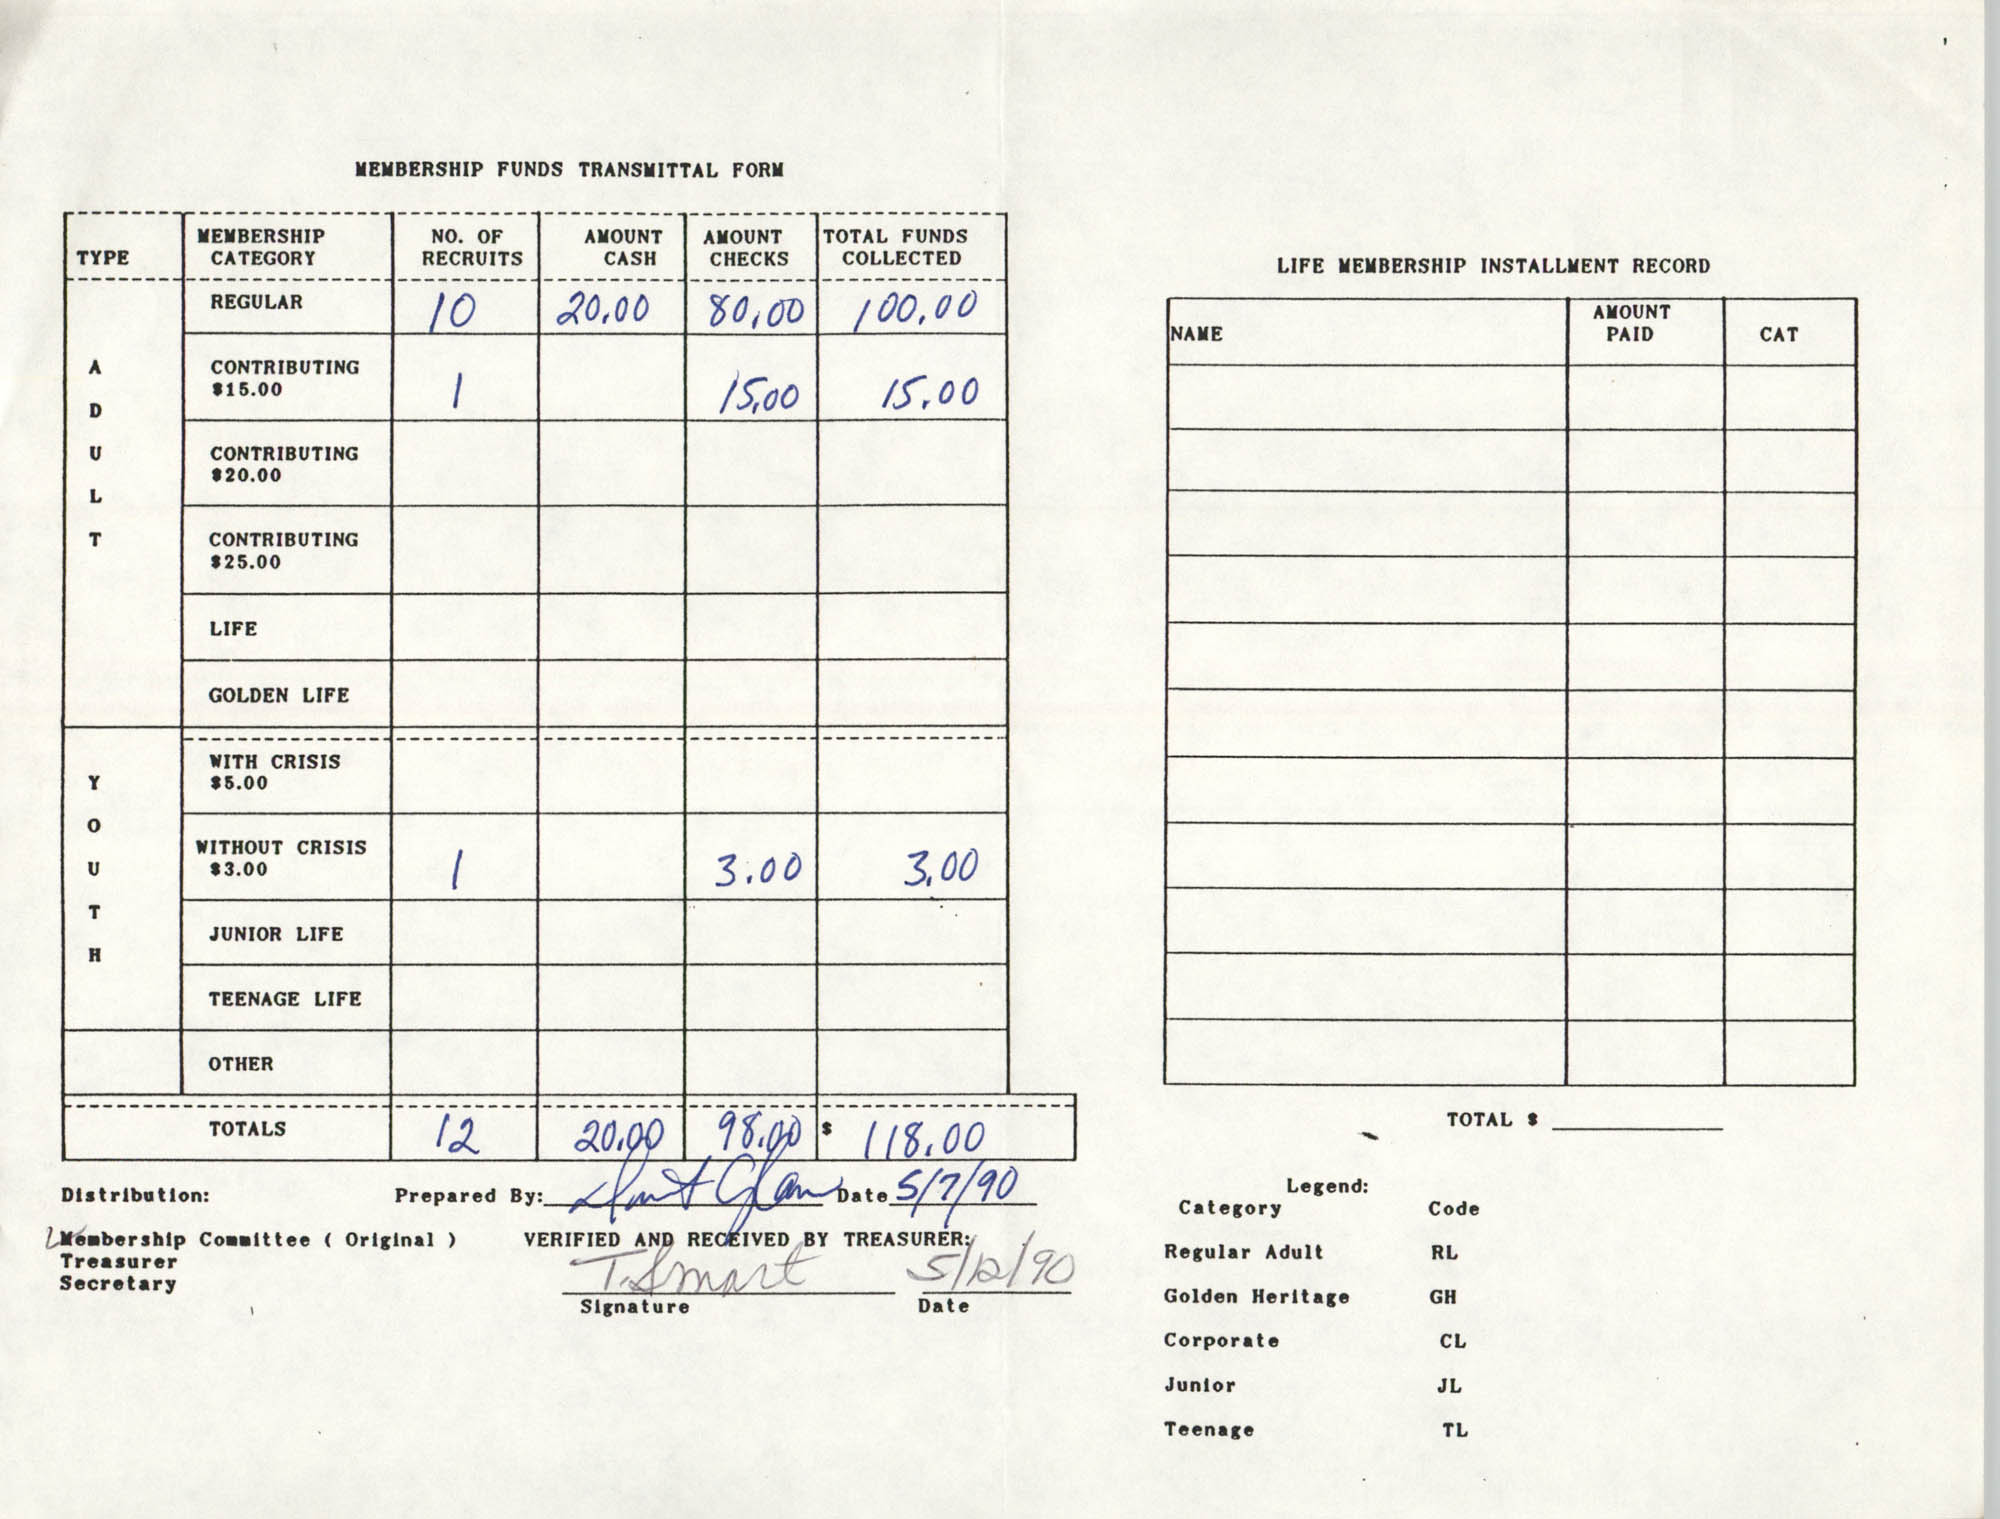 Charleston Branch of the NAACP Funds Transmittal Forms, May 1990, Page 1